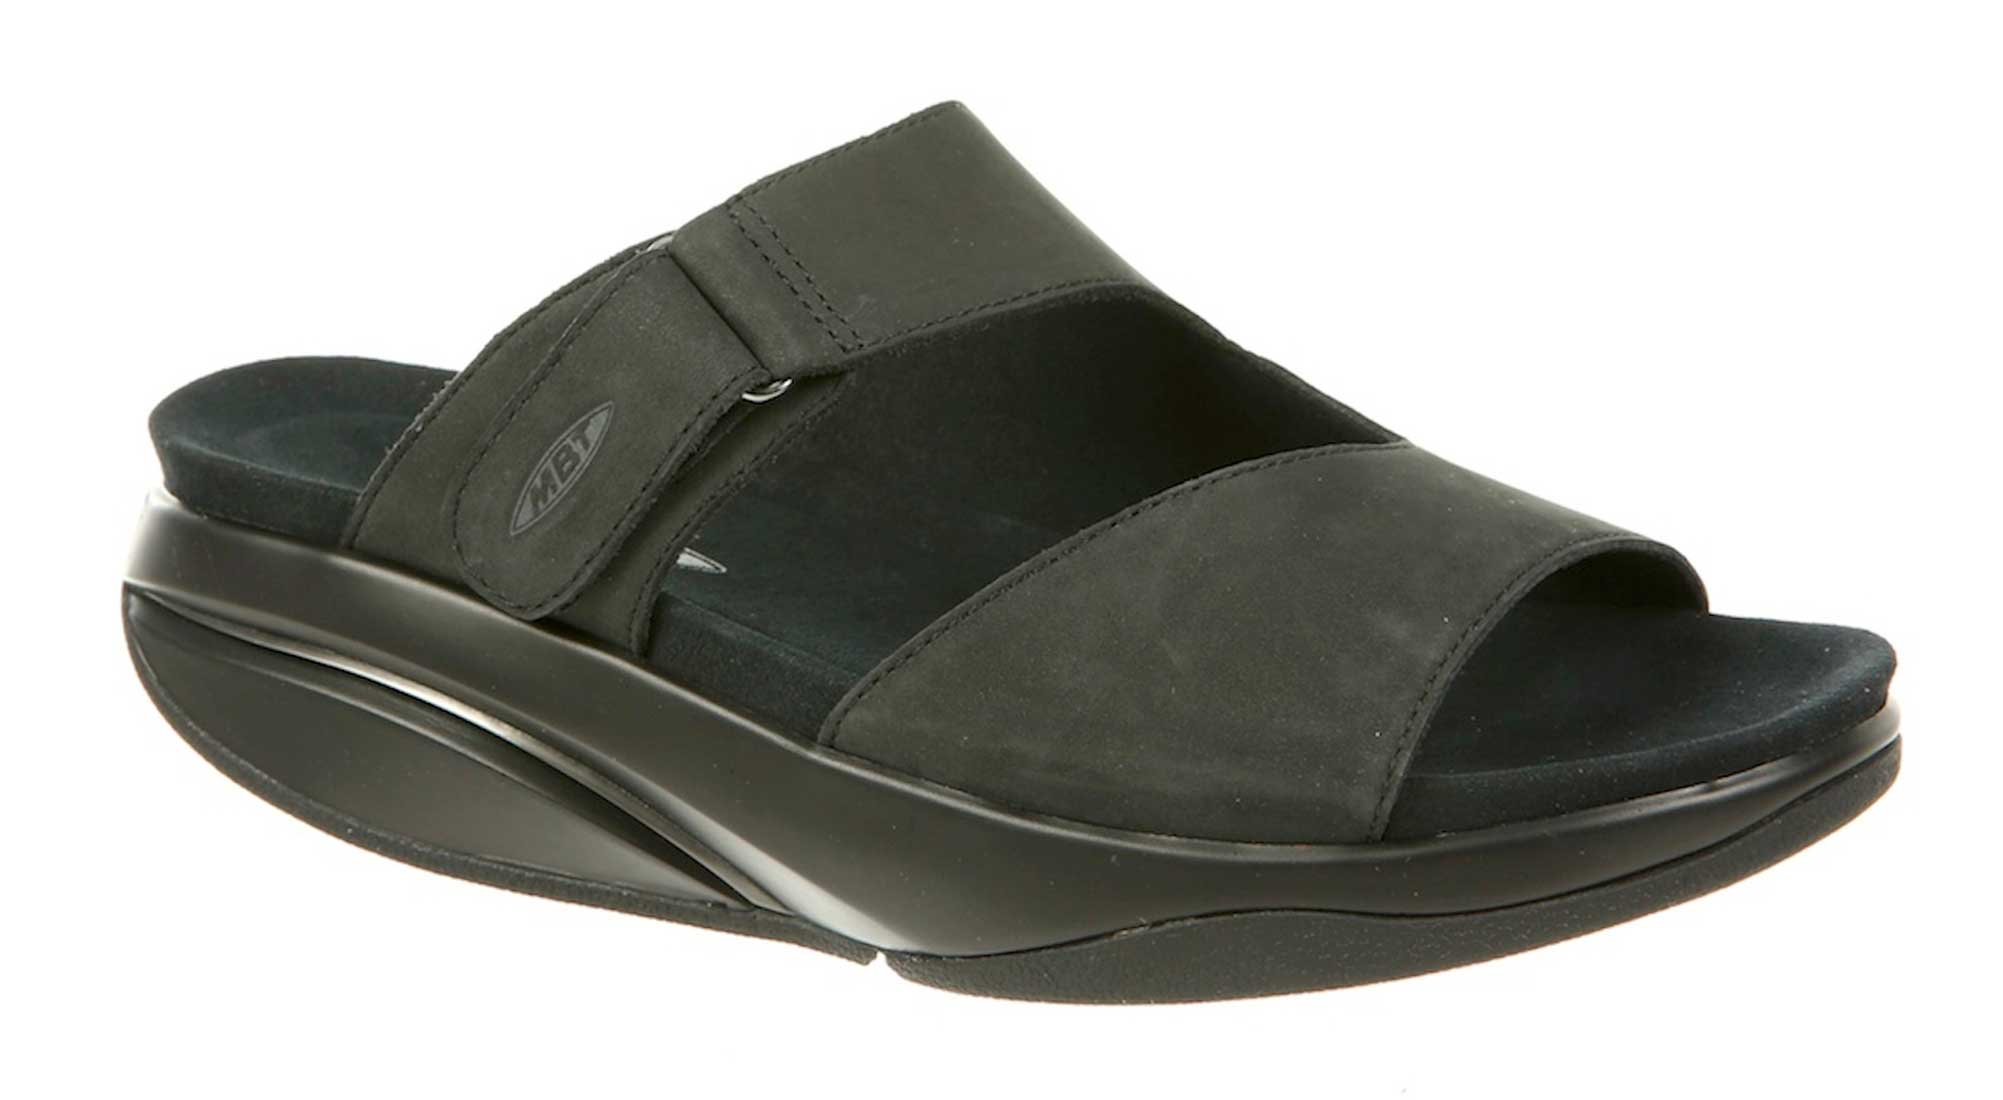 MBT Shoes Women s Tabia - Moderate f8313ac7f